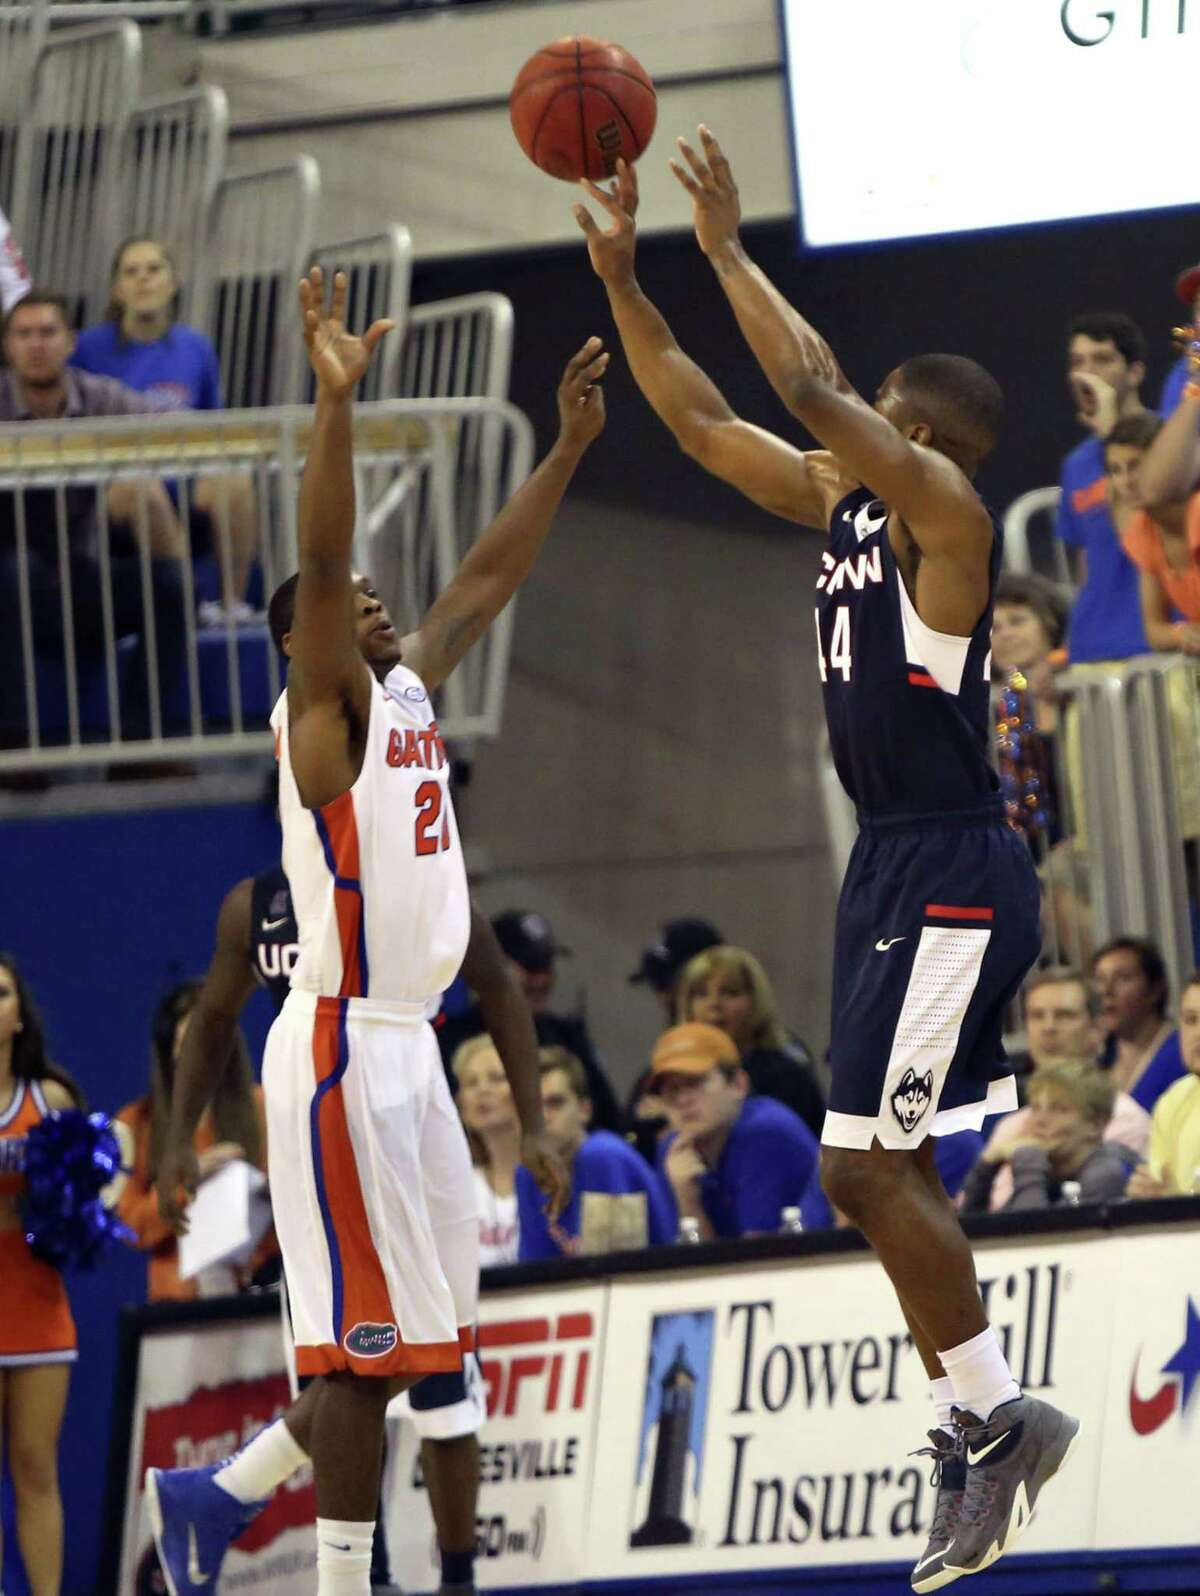 UConn's Rodney Purvis knocks down a 3-pointer over Florida's Michael Frazier II late in the second half of the Huskies' 63-59 win on Saturday in Gainesville, Fla.